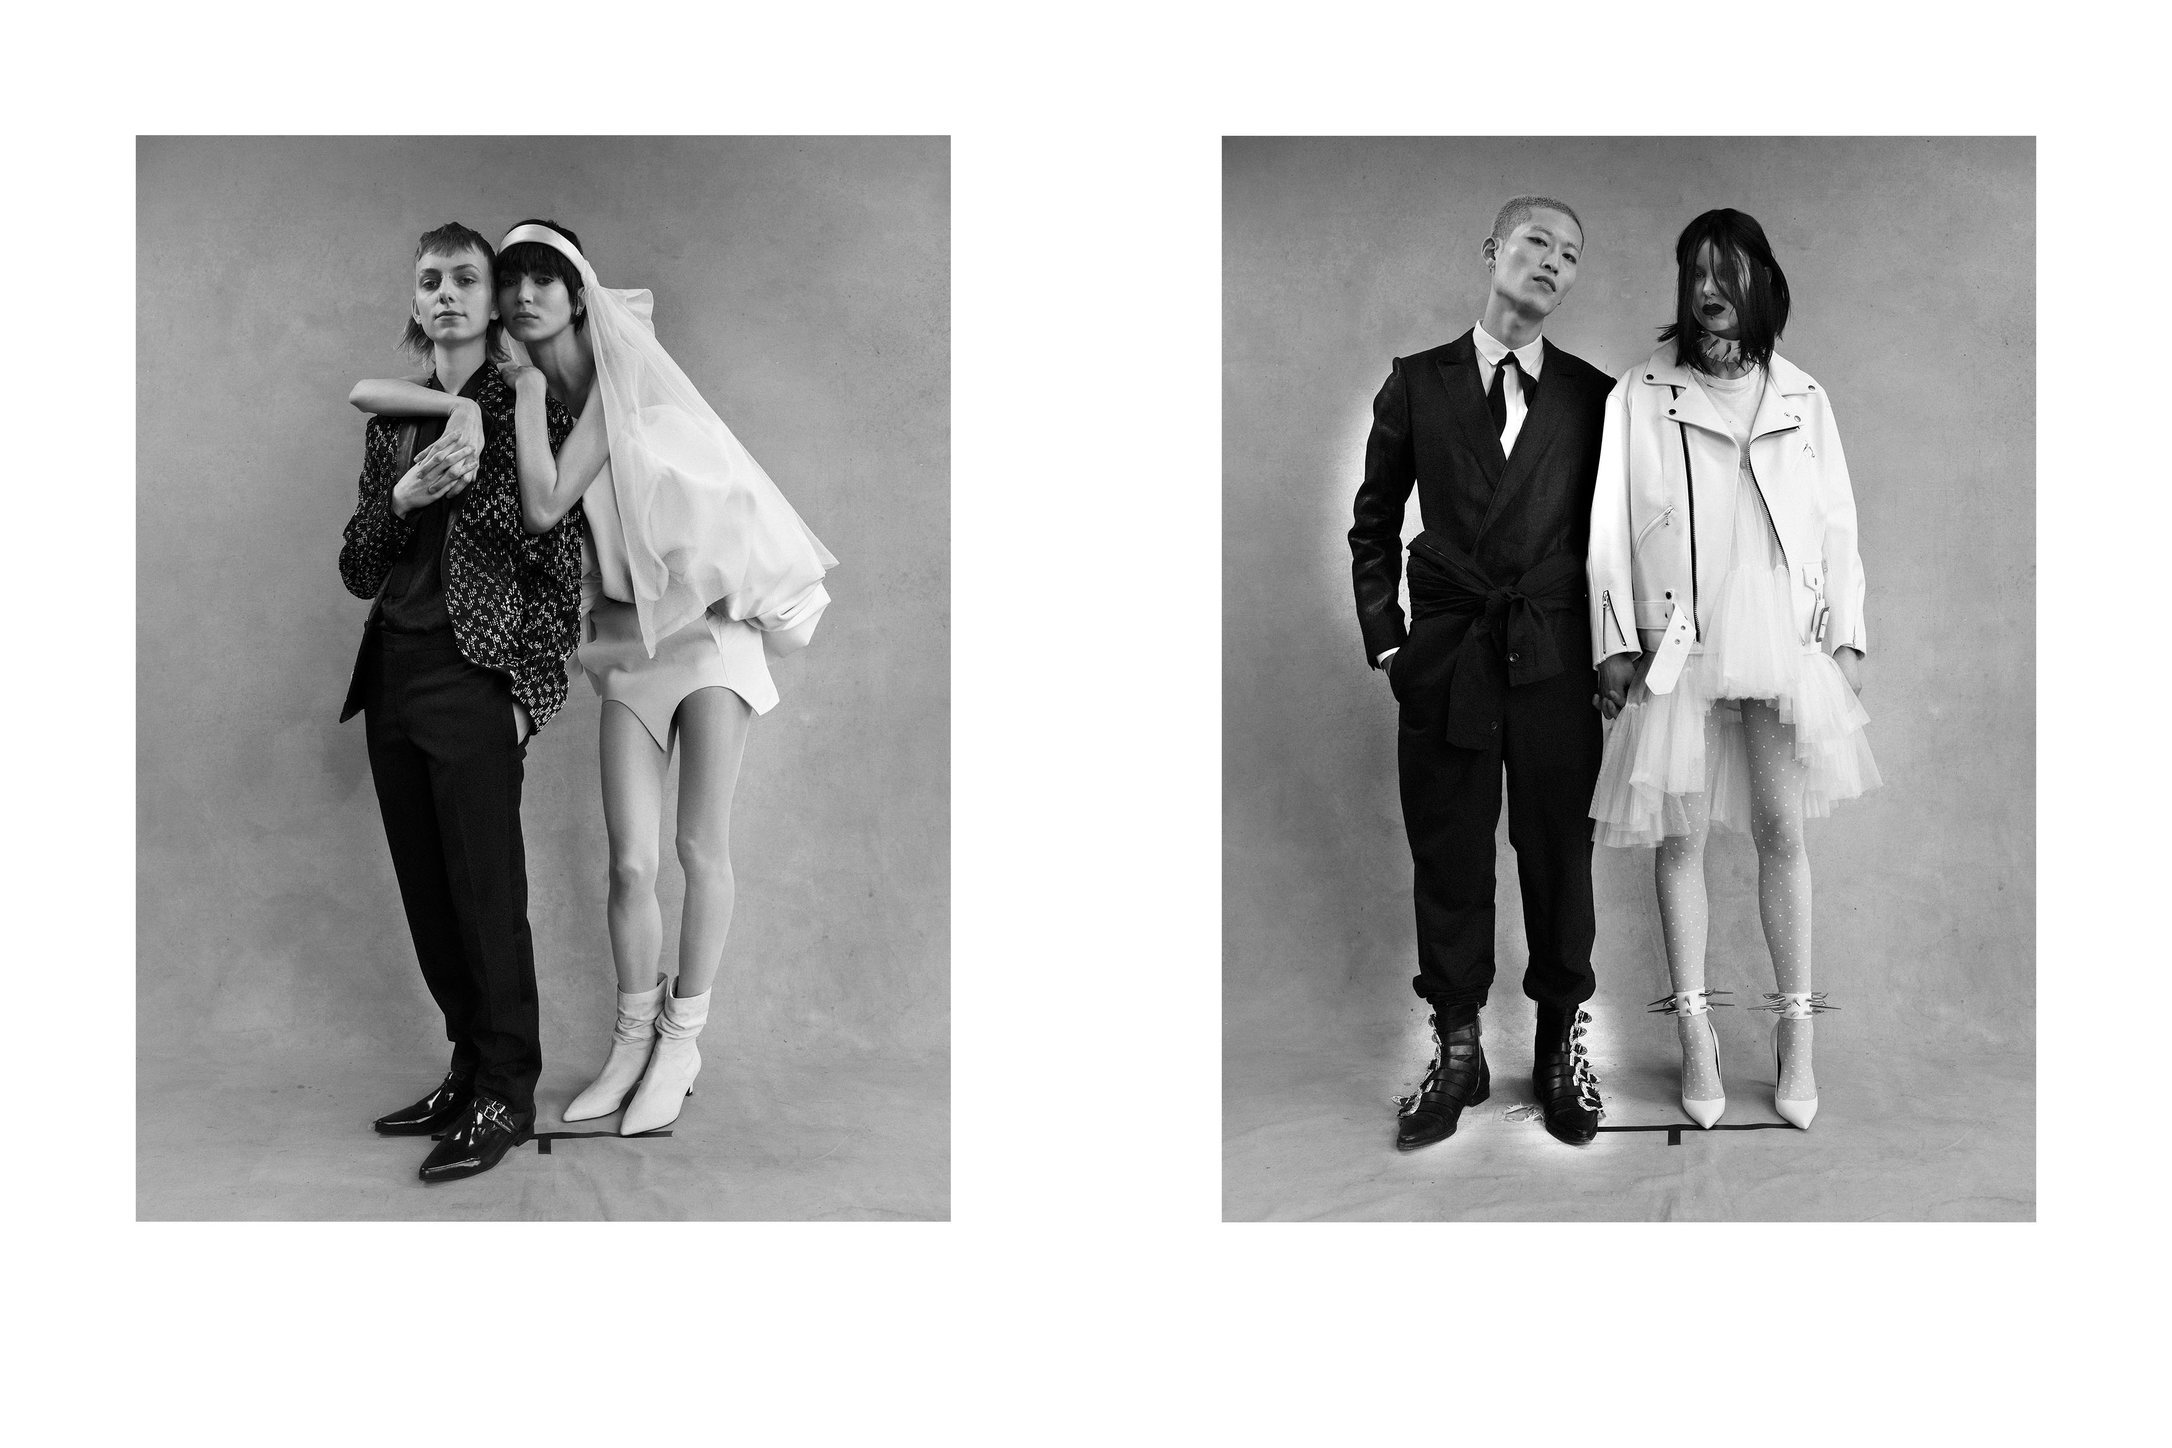 Interview Magazine. White Wedding, April, 2018.